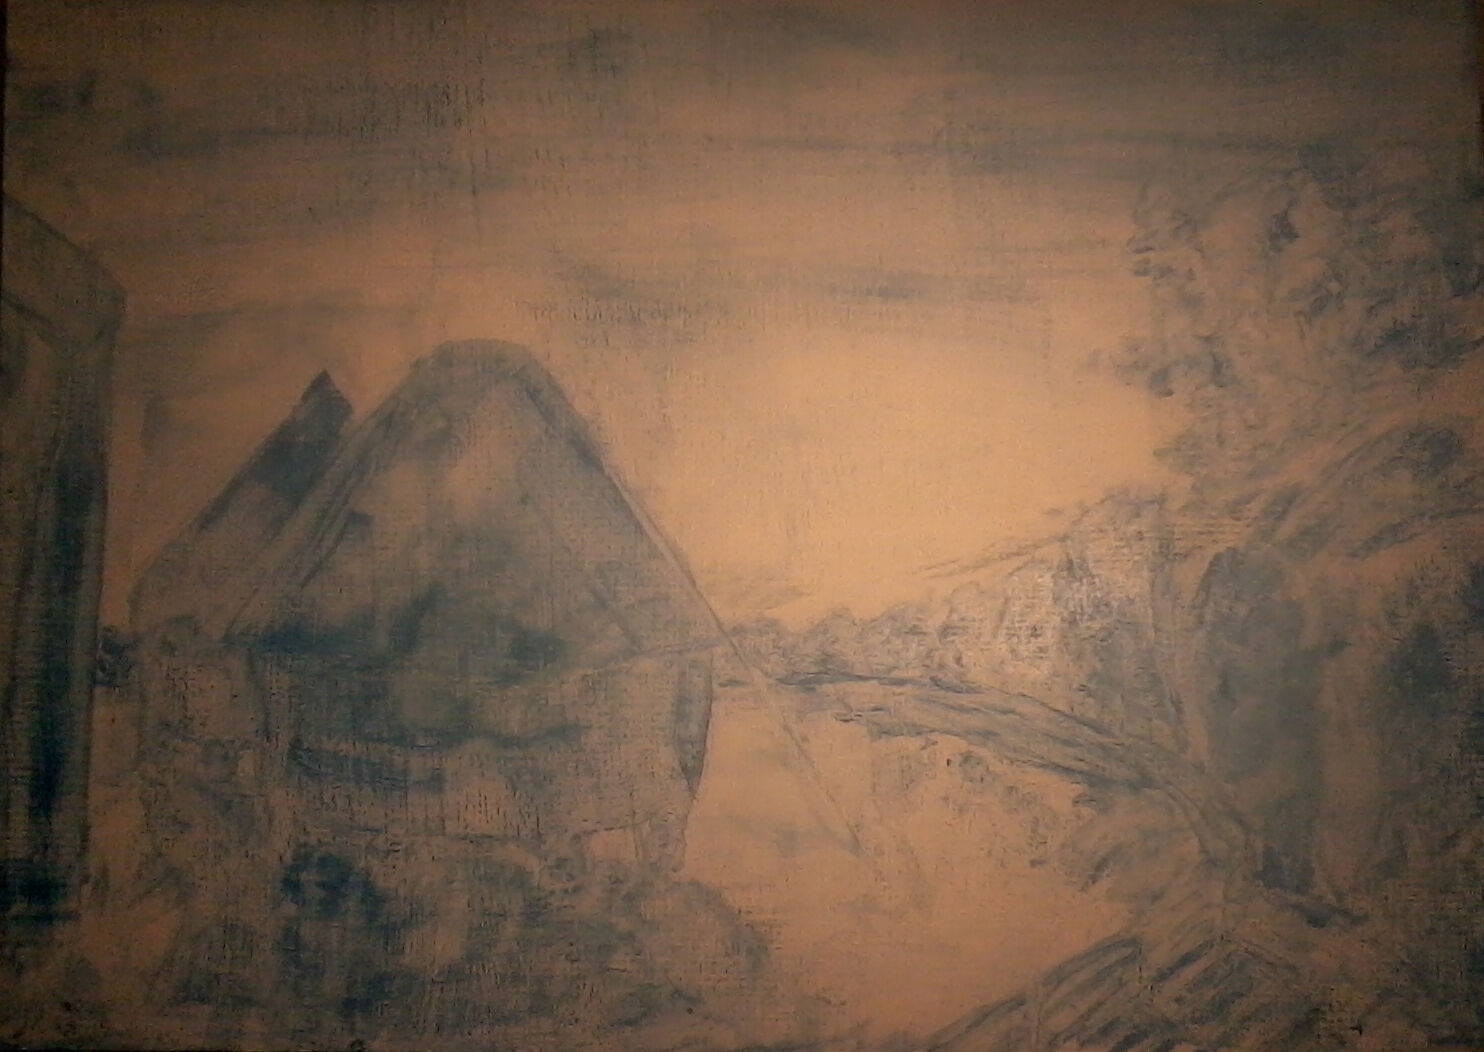 The 'impressionist' style evident in my painting 'Rick Thatching at Dusk' at an early stage in the work.